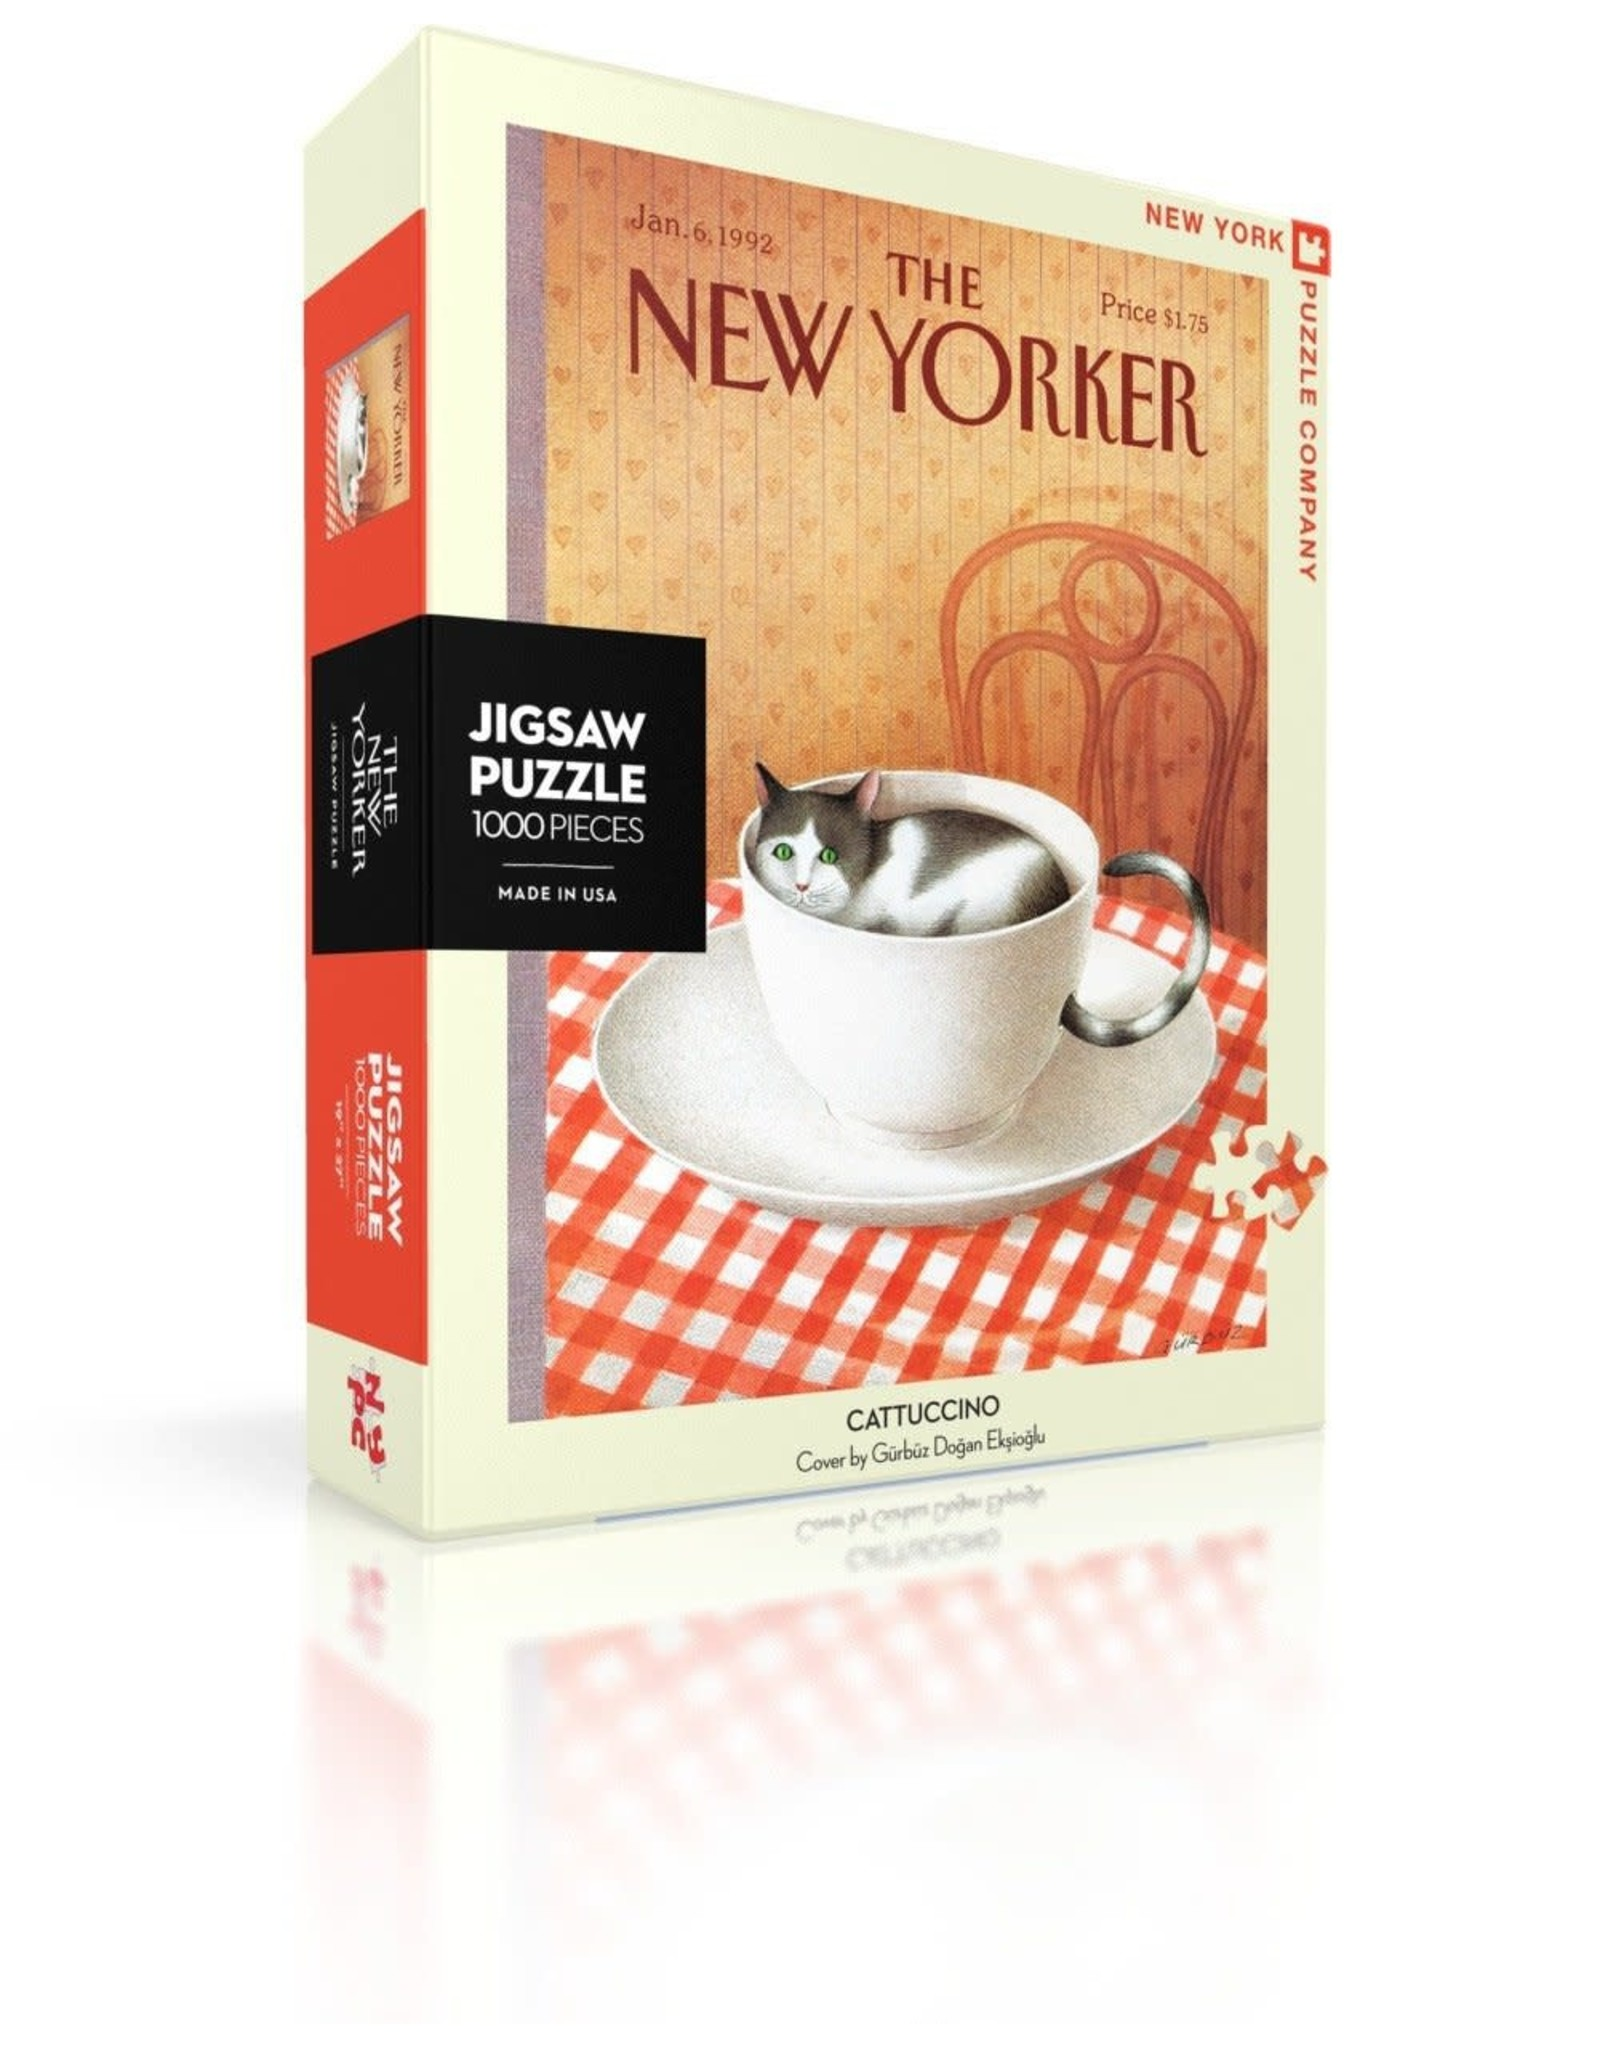 New Yorker Puzzle - Cattuccino